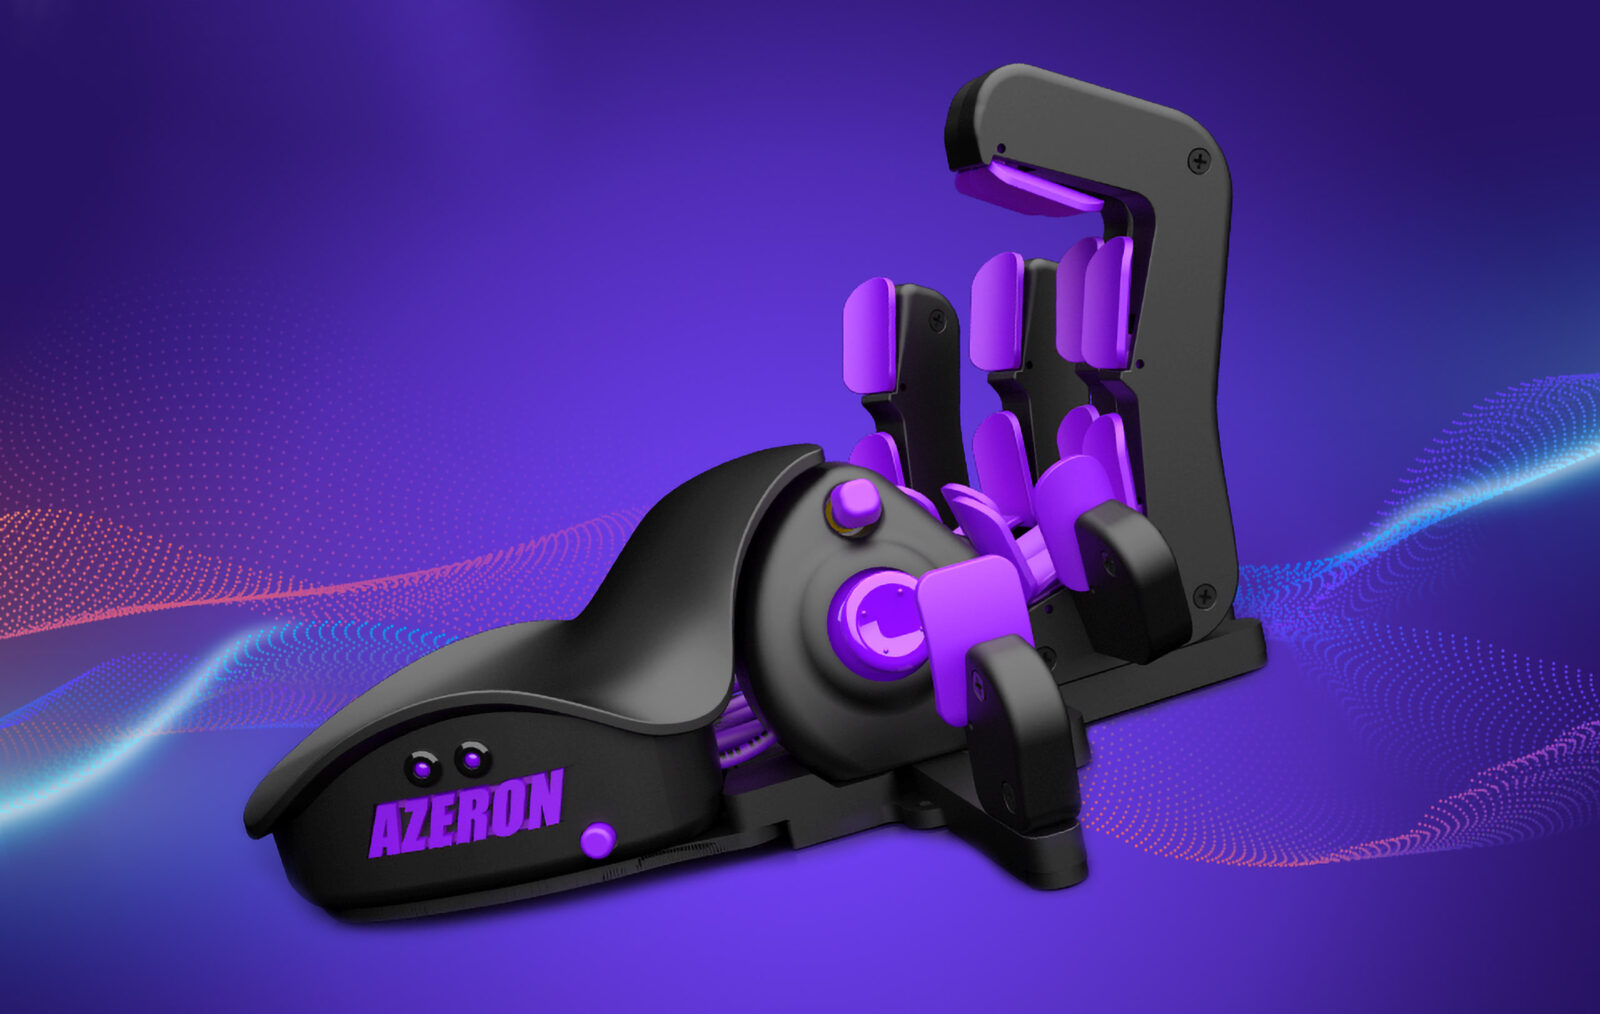 A totally new game experience with an unrivaled ergonomics and speed